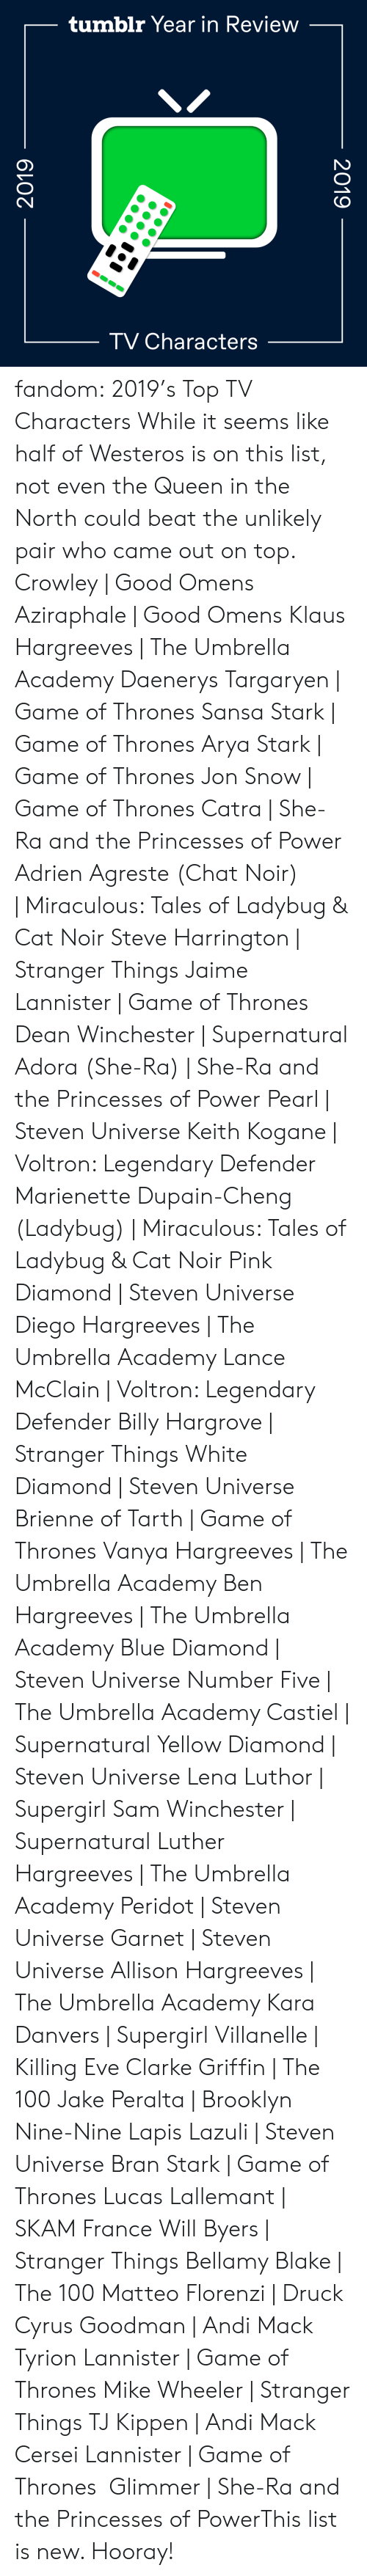 Dean: tumblr Year in Review  TV Characters  2019  2019 fandom:  2019's Top TV Characters  While it seems like half of Westeros is on this list, not even the Queen in the North could beat the unlikely pair who came out on top.  Crowley | Good Omens  Aziraphale | Good Omens  Klaus Hargreeves | The Umbrella Academy  Daenerys Targaryen | Game of Thrones  Sansa Stark | Game of Thrones  Arya Stark | Game of Thrones  Jon Snow | Game of Thrones  Catra | She-Ra and the Princesses of Power  Adrien Agreste (Chat Noir) | Miraculous: Tales of Ladybug & Cat Noir  Steve Harrington | Stranger Things  Jaime Lannister | Game of Thrones  Dean Winchester | Supernatural  Adora (She-Ra) | She-Ra and the Princesses of Power  Pearl | Steven Universe  Keith Kogane | Voltron: Legendary Defender  Marienette Dupain-Cheng (Ladybug) | Miraculous: Tales of Ladybug & Cat Noir  Pink Diamond | Steven Universe  Diego Hargreeves | The Umbrella Academy  Lance McClain | Voltron: Legendary Defender  Billy Hargrove | Stranger Things  White Diamond | Steven Universe  Brienne of Tarth | Game of Thrones  Vanya Hargreeves | The Umbrella Academy  Ben Hargreeves | The Umbrella Academy  Blue Diamond | Steven Universe  Number Five | The Umbrella Academy  Castiel | Supernatural  Yellow Diamond | Steven Universe  Lena Luthor | Supergirl  Sam Winchester | Supernatural  Luther Hargreeves | The Umbrella Academy  Peridot | Steven Universe  Garnet | Steven Universe  Allison Hargreeves | The Umbrella Academy  Kara Danvers | Supergirl  Villanelle | Killing Eve  Clarke Griffin | The 100  Jake Peralta | Brooklyn Nine-Nine  Lapis Lazuli | Steven Universe  Bran Stark | Game of Thrones  Lucas Lallemant | SKAM France  Will Byers | Stranger Things  Bellamy Blake | The 100  Matteo Florenzi | Druck  Cyrus Goodman | Andi Mack  Tyrion Lannister | Game of Thrones  Mike Wheeler | Stranger Things  TJ Kippen | Andi Mack  Cersei Lannister | Game of Thrones  Glimmer | She-Ra and the Princesses of PowerThis list is new. Hooray!